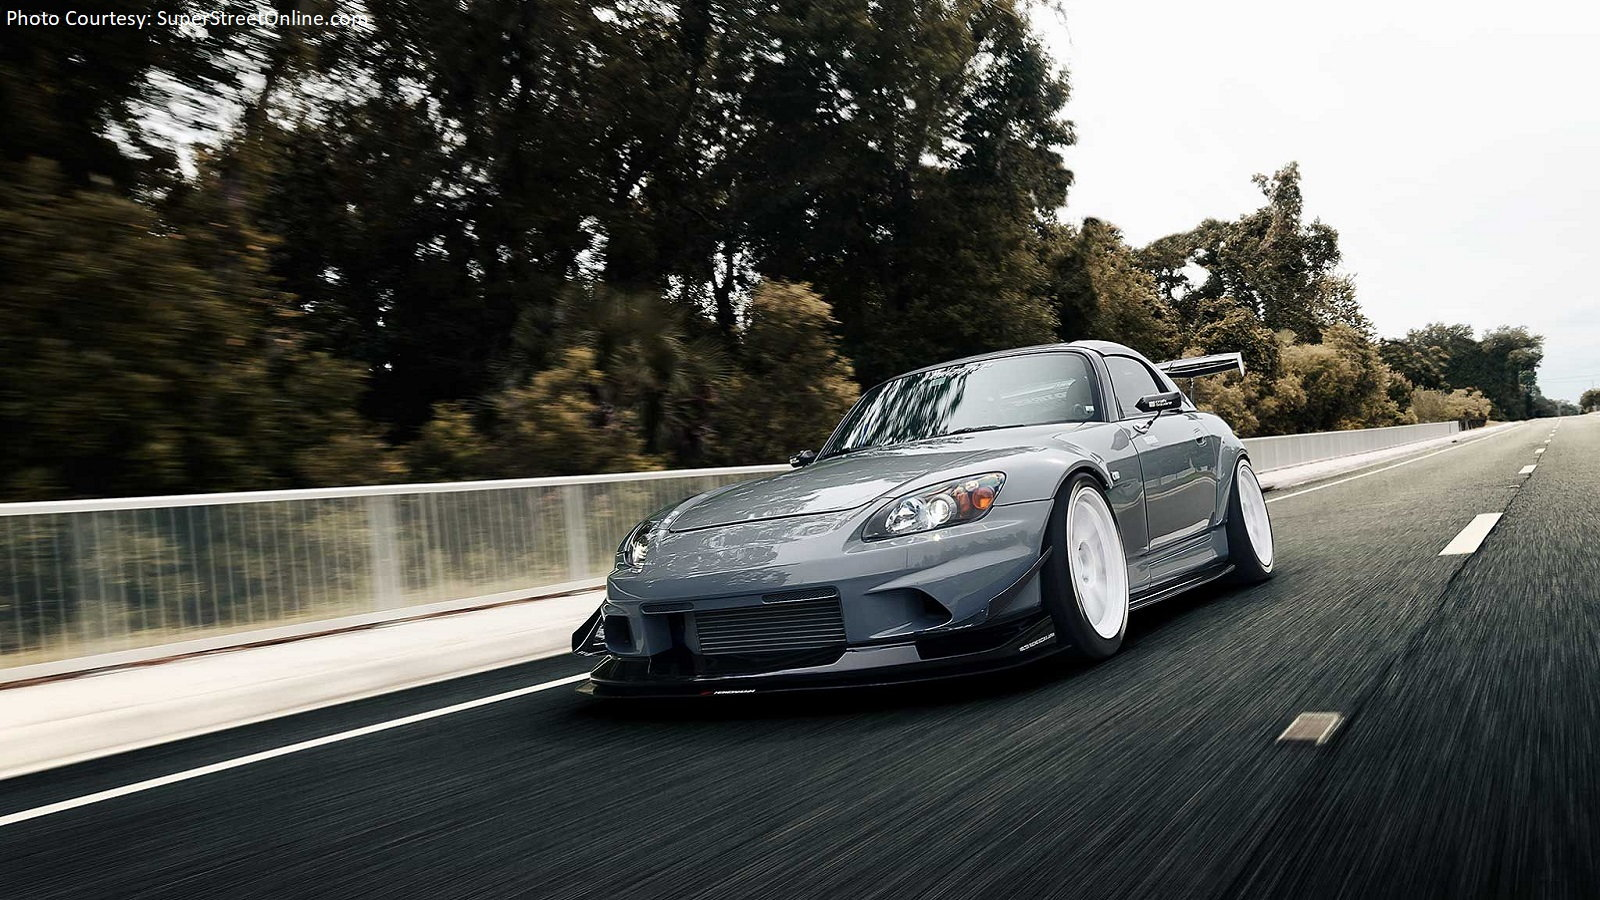 Supercharged S2000